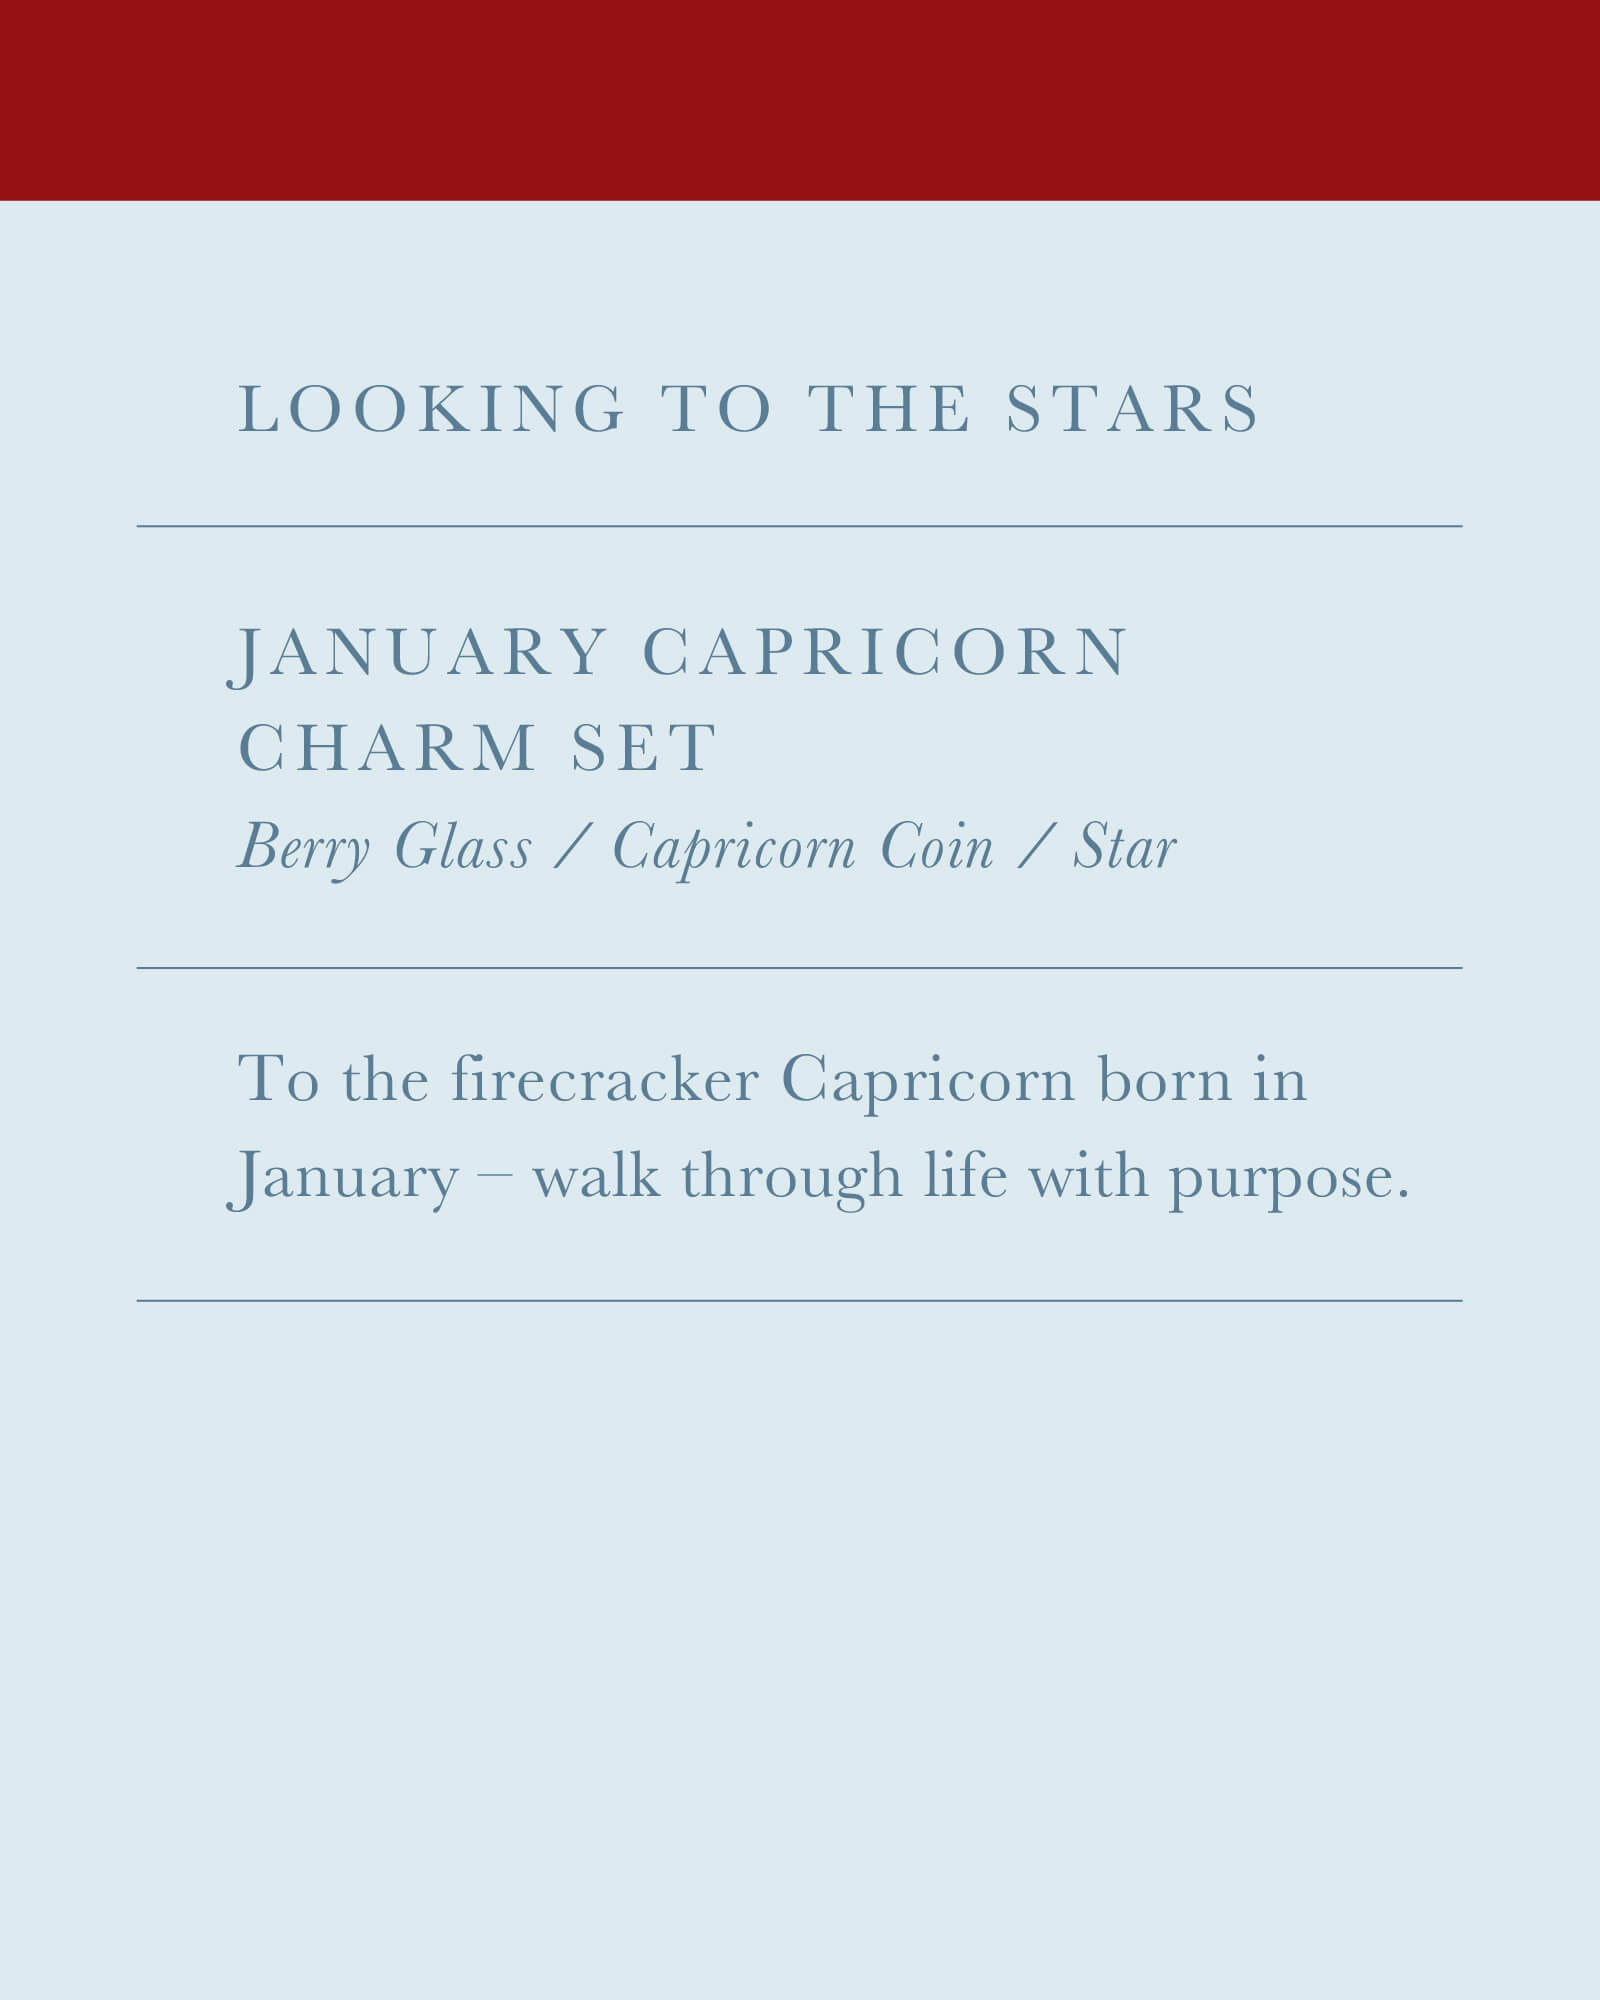 January Capricorn Charm Necklace Set in Silver